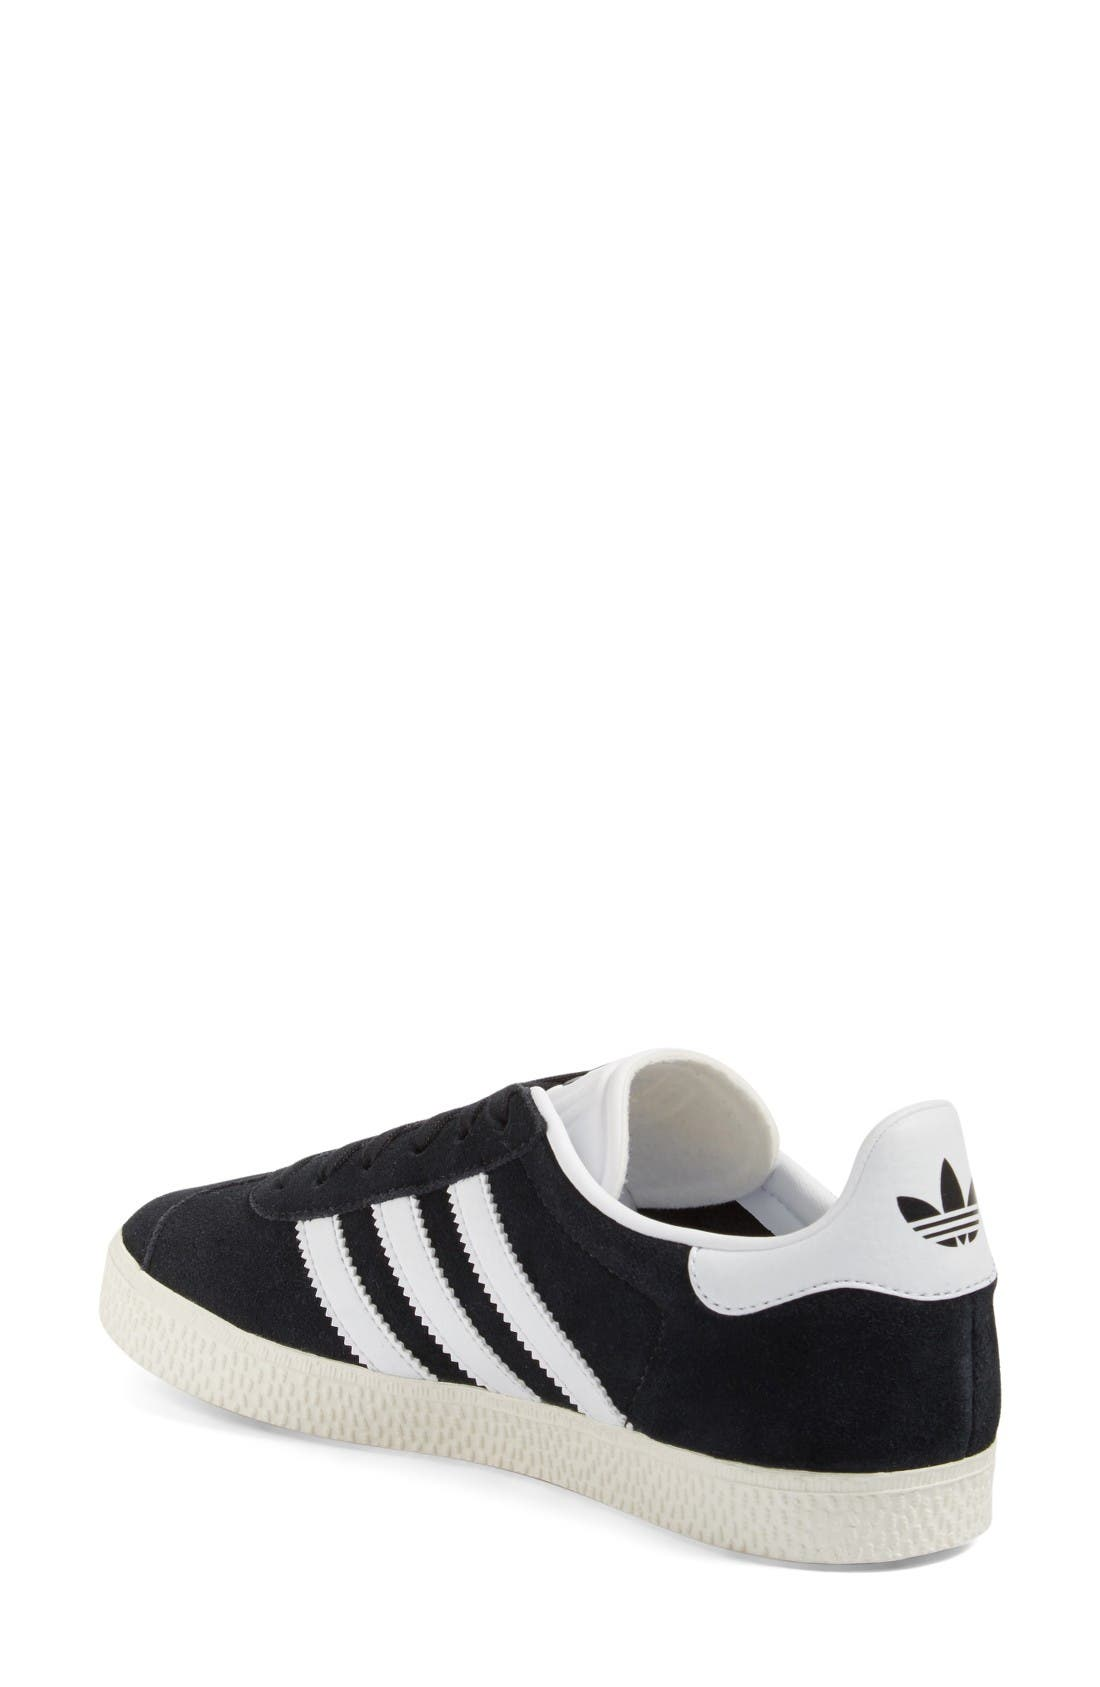 Gazelle Sneaker,                             Alternate thumbnail 2, color,                             Core Black